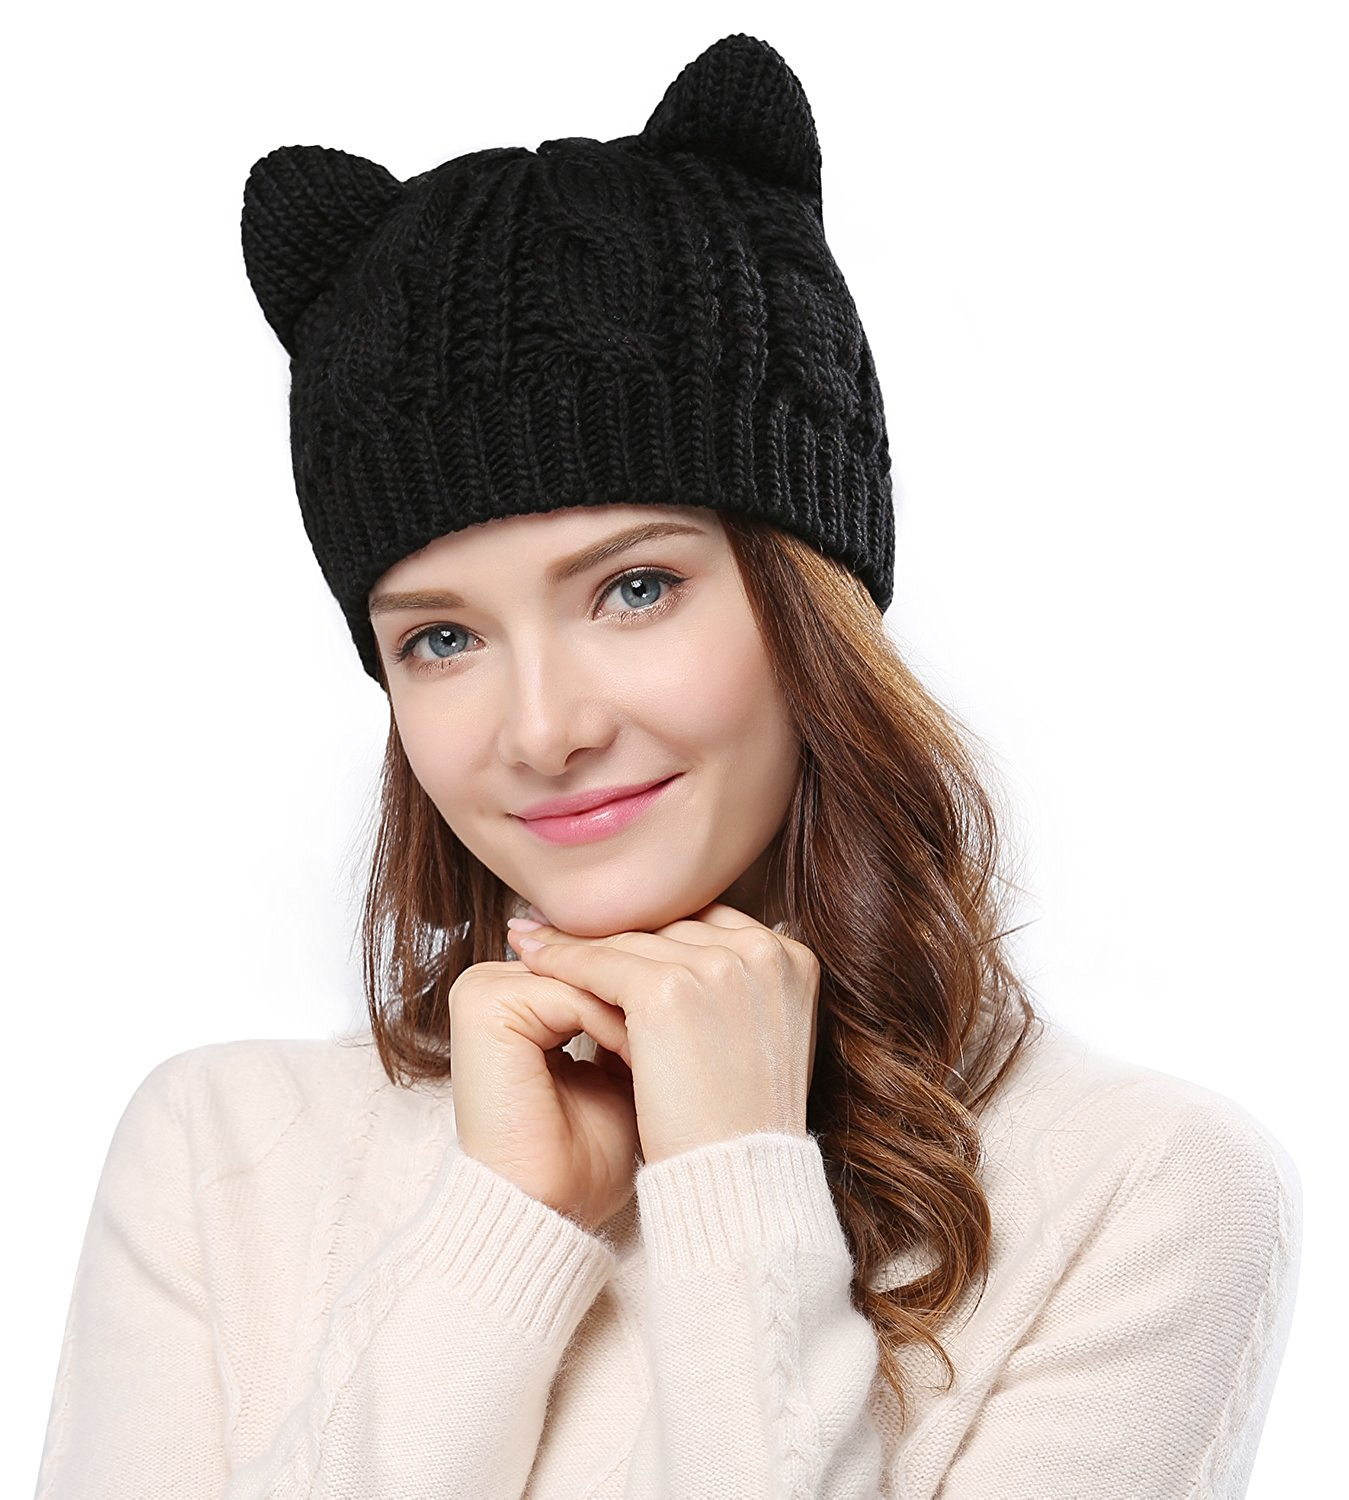 Kitty Crochet Braided Knit Cap